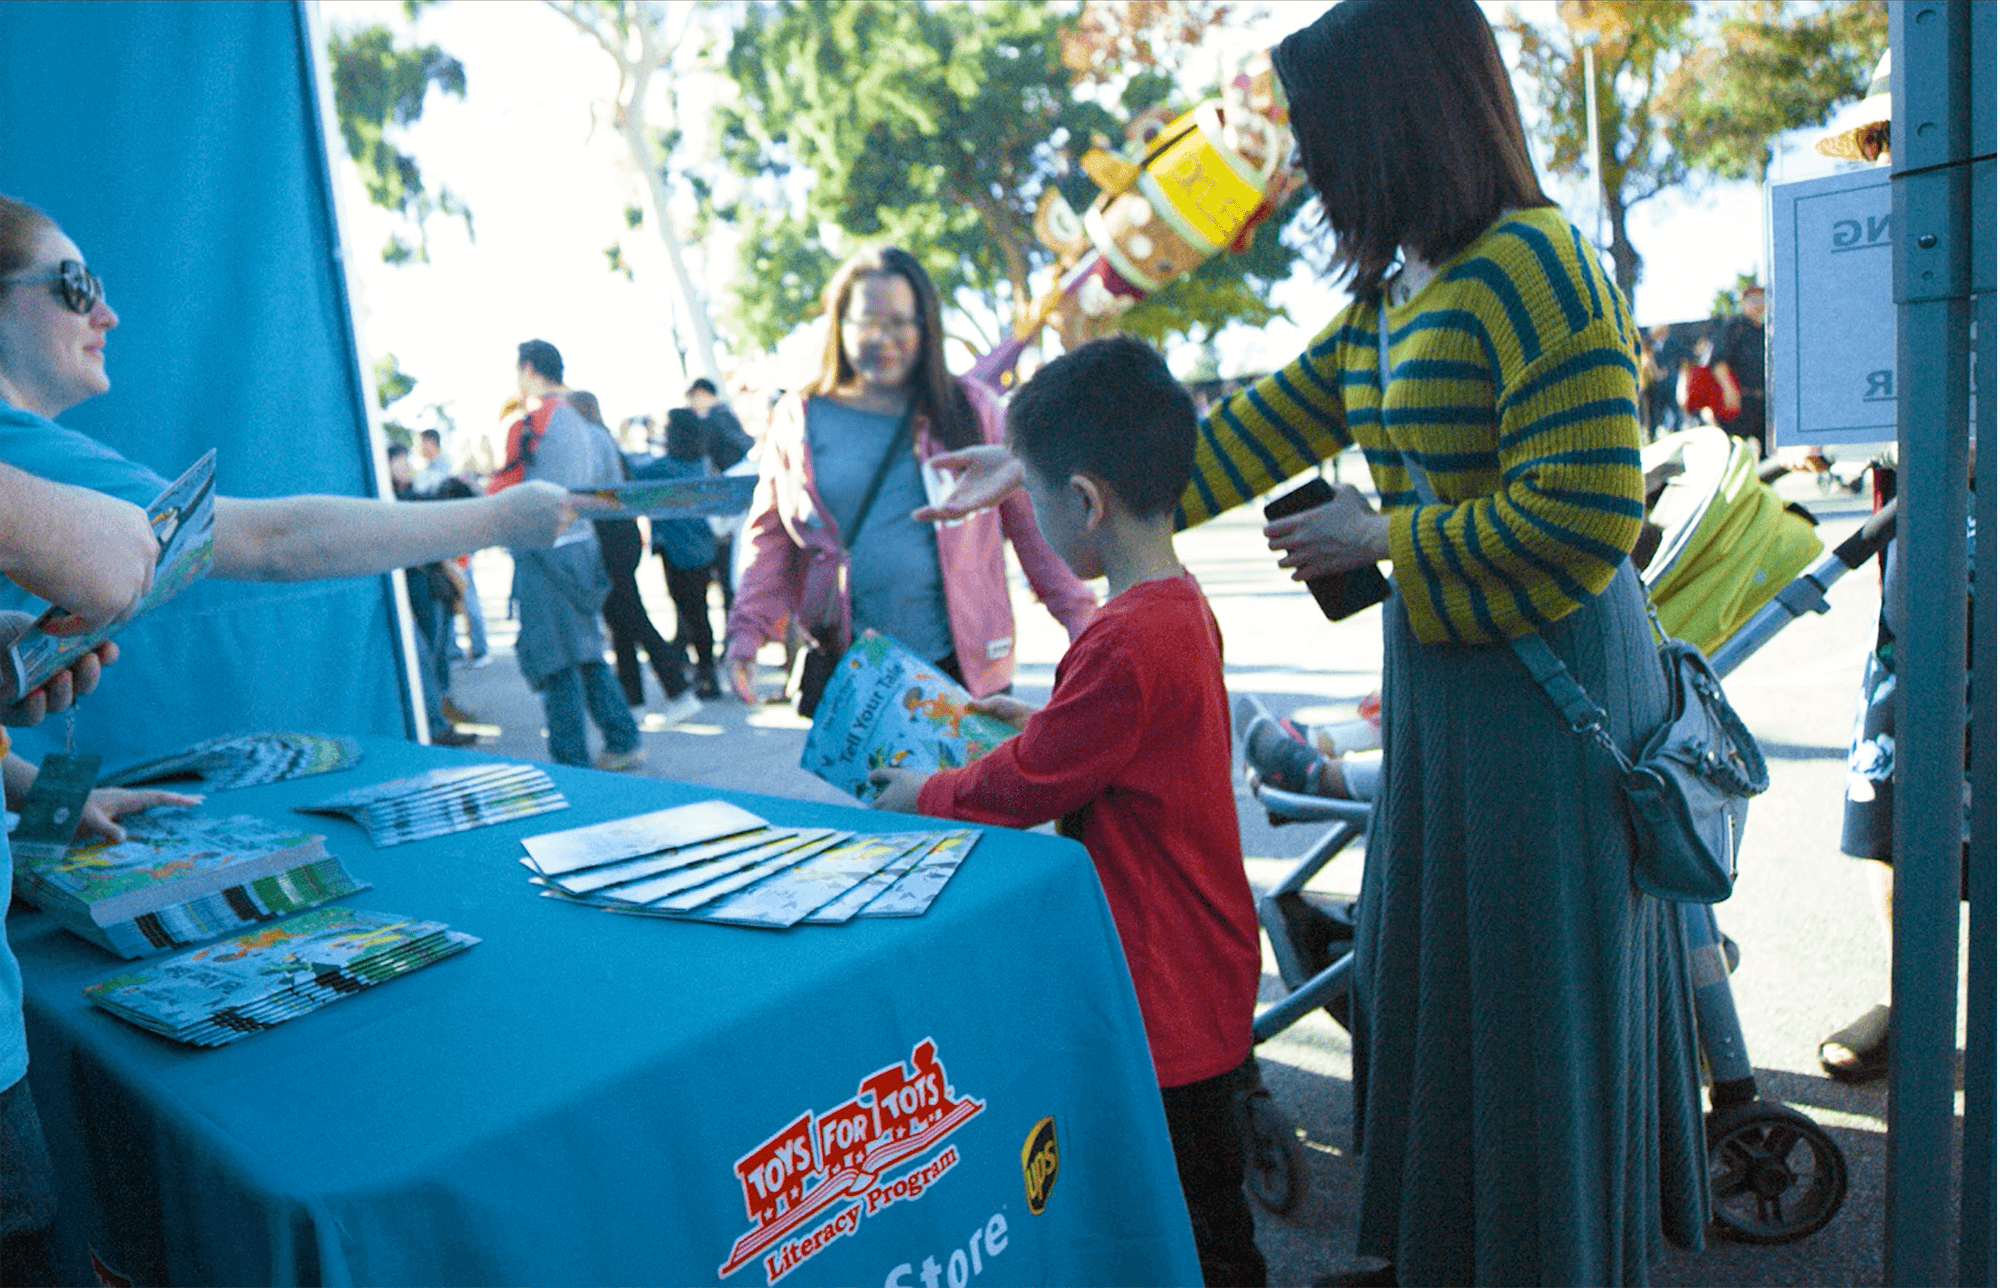 We distributed 10,000 free books featuring the winning short stories to children at the Post Parade celebration, helping to open a world of opportunity for America's kids.